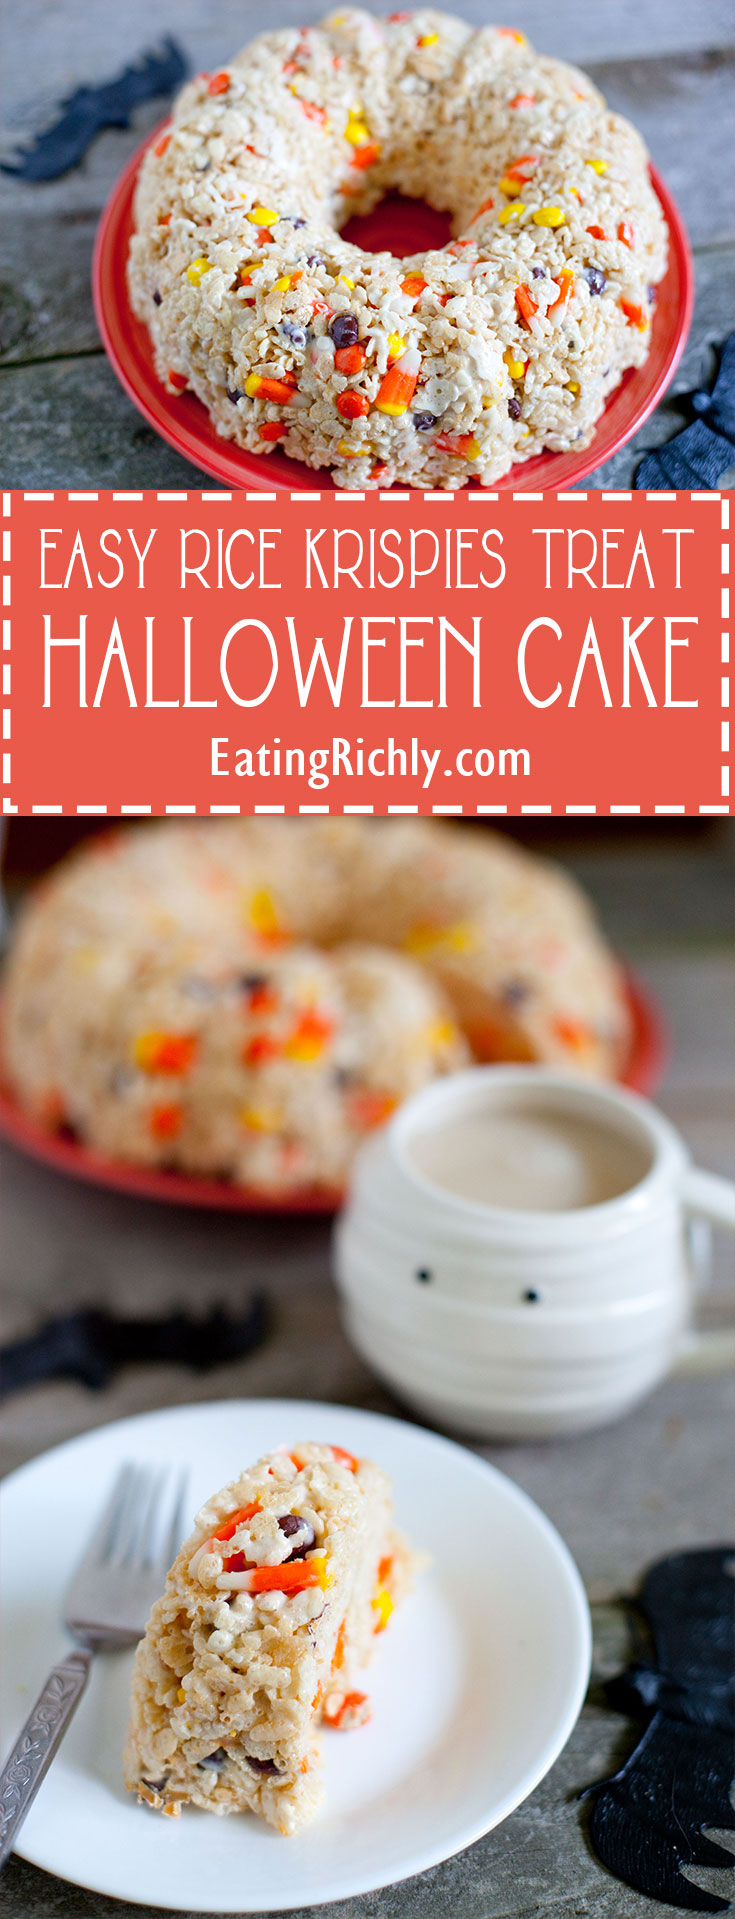 Take Rice Krispies Treats to a new level of fun in this easy Halloween Rice Krispie cake that makes the perfect Halloween party dessert in only 10 minutes! From EatingRichly.com